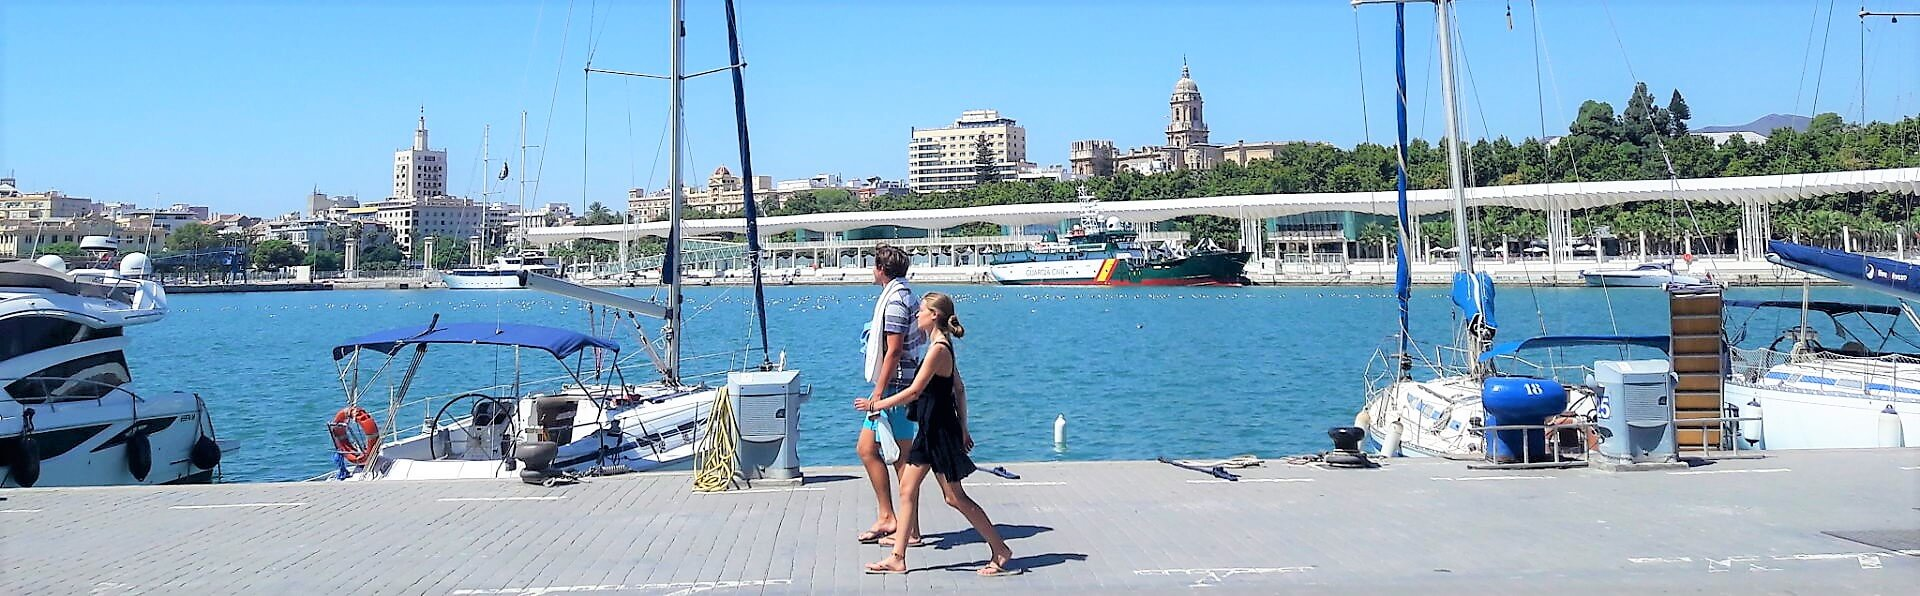 Couple at Muelle Uno